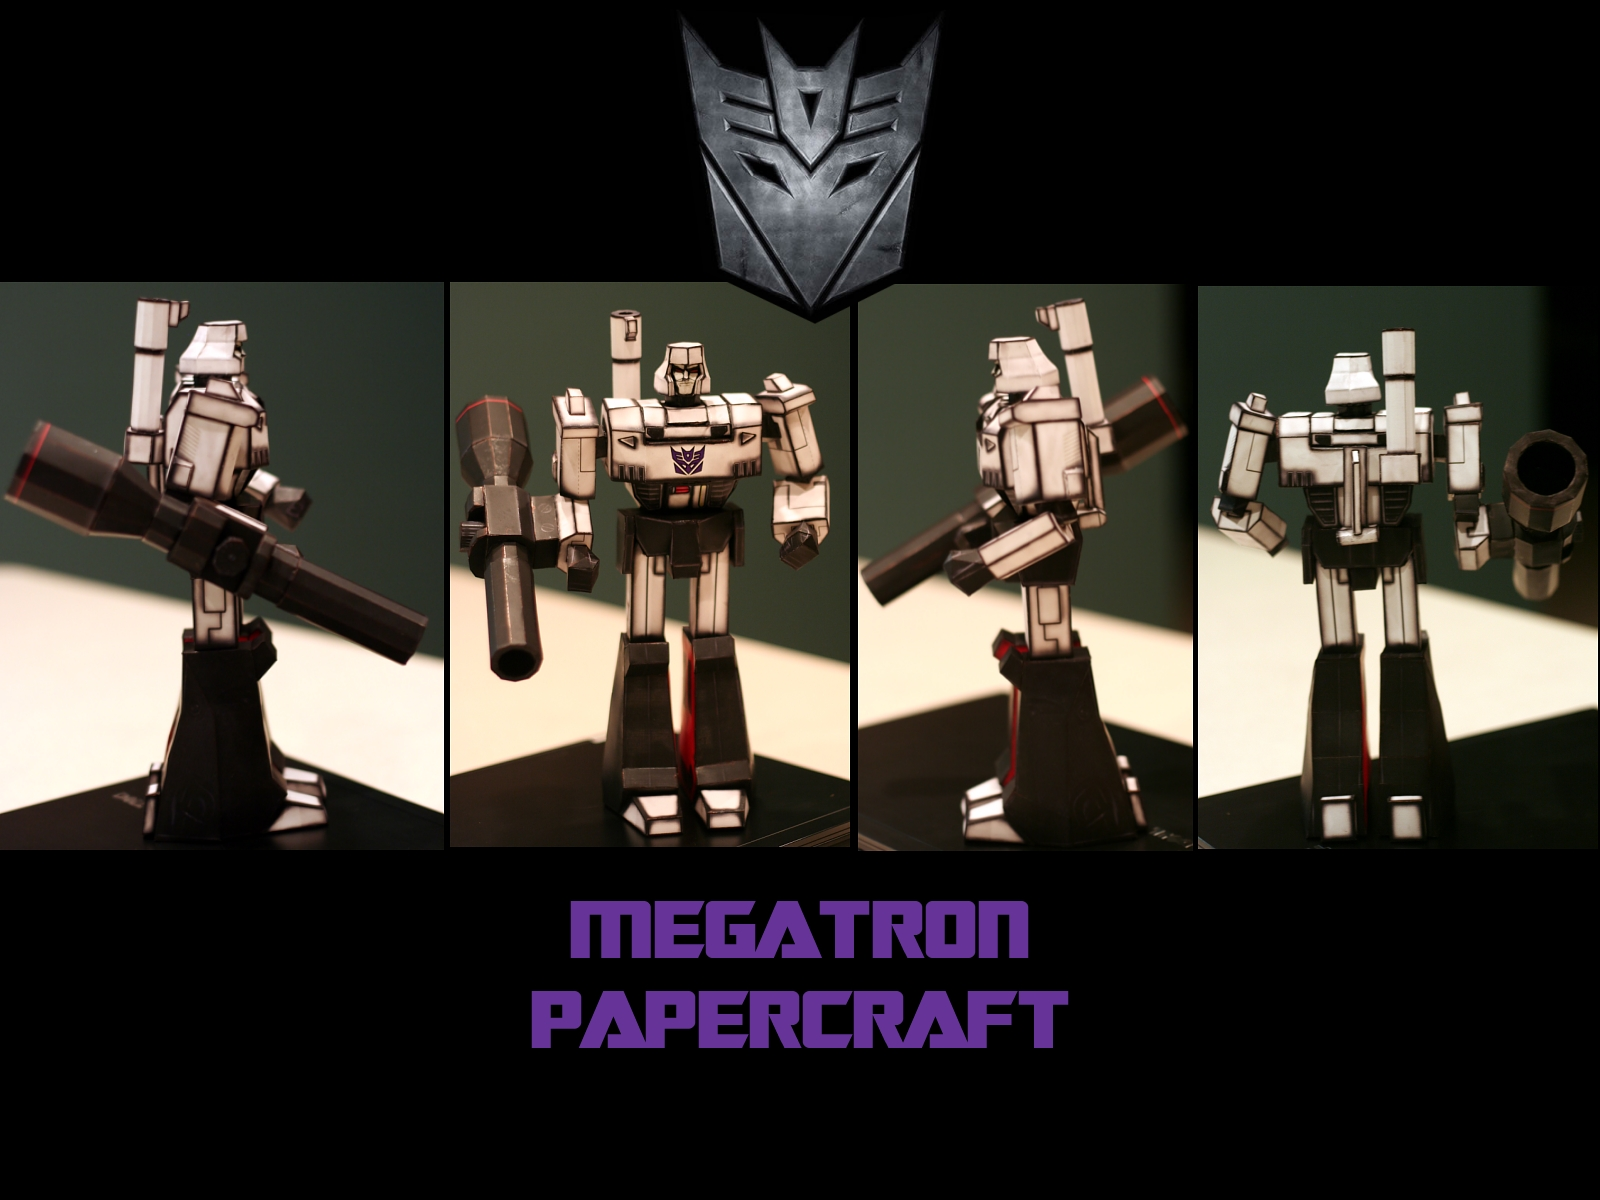 Megatron_Papercraft by monkeyrum